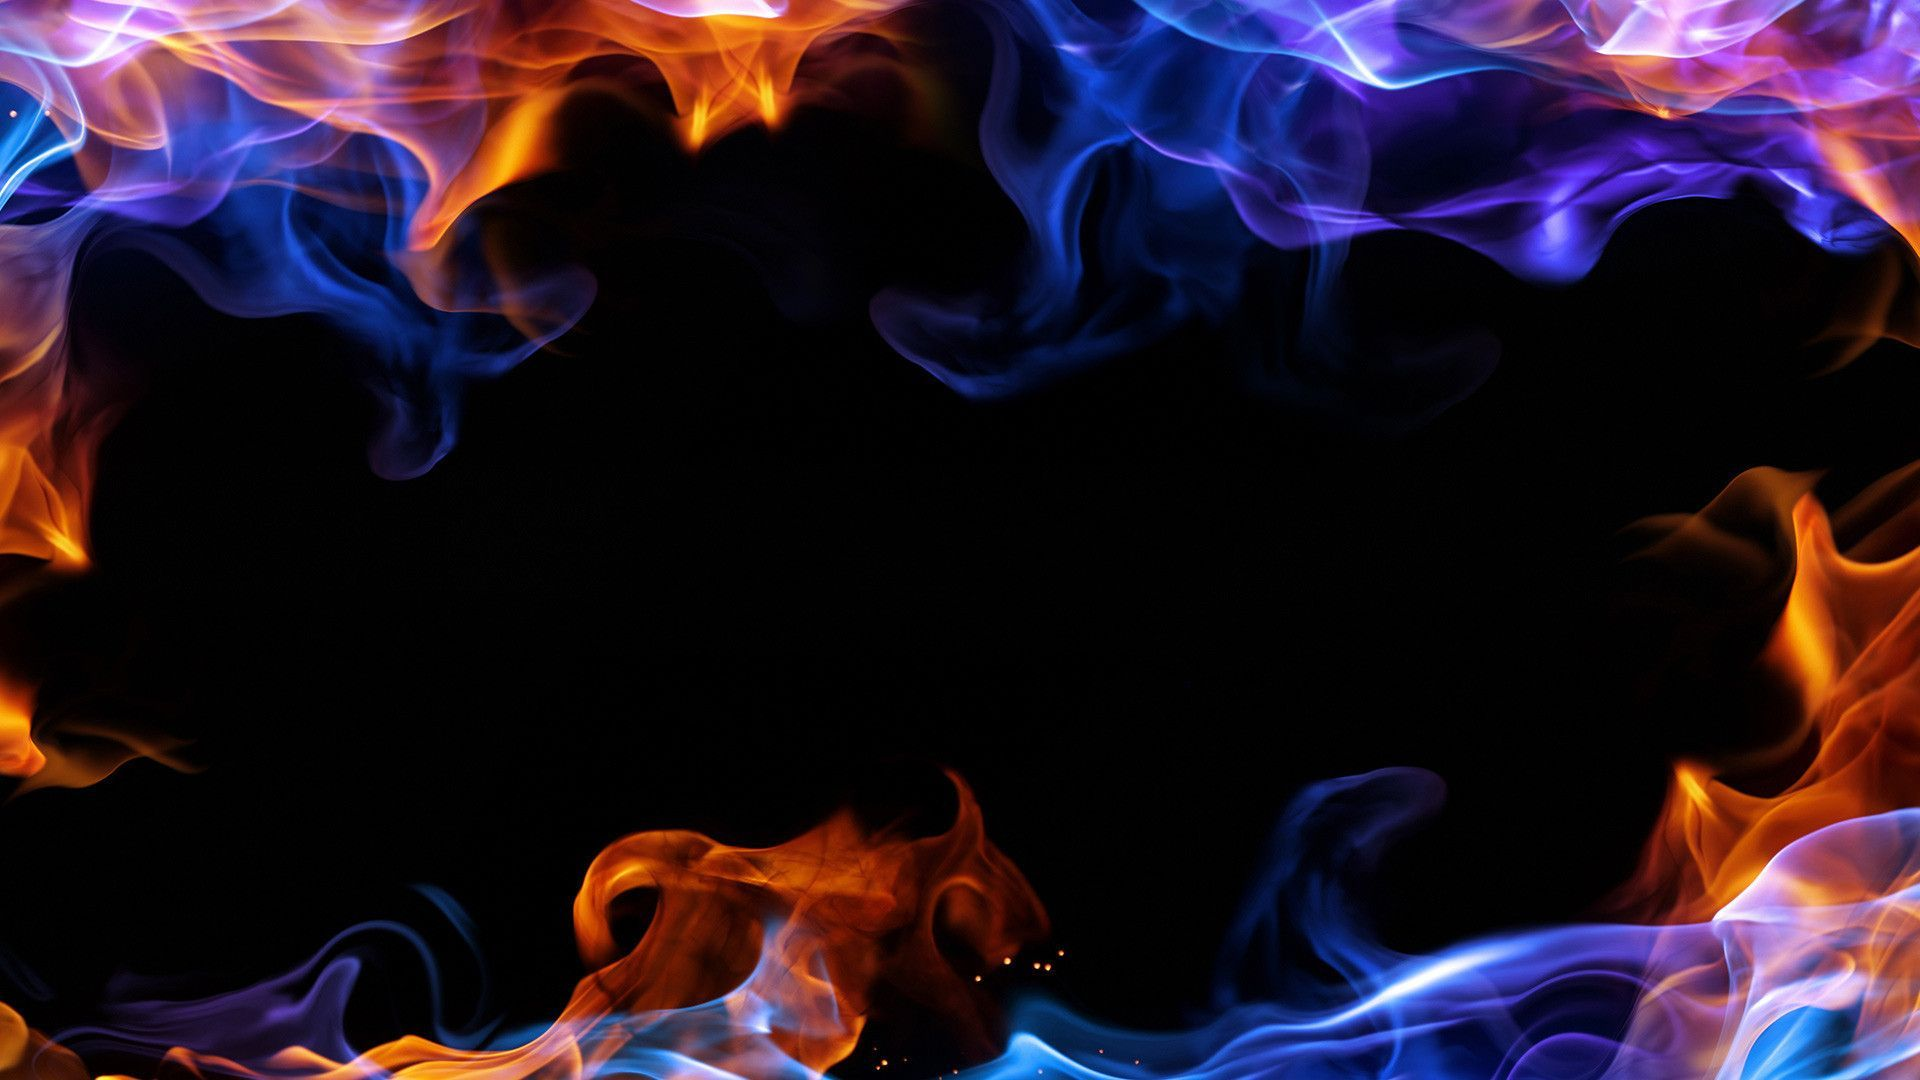 Black And Red Smoke Wallpaper Widescreen 1920x